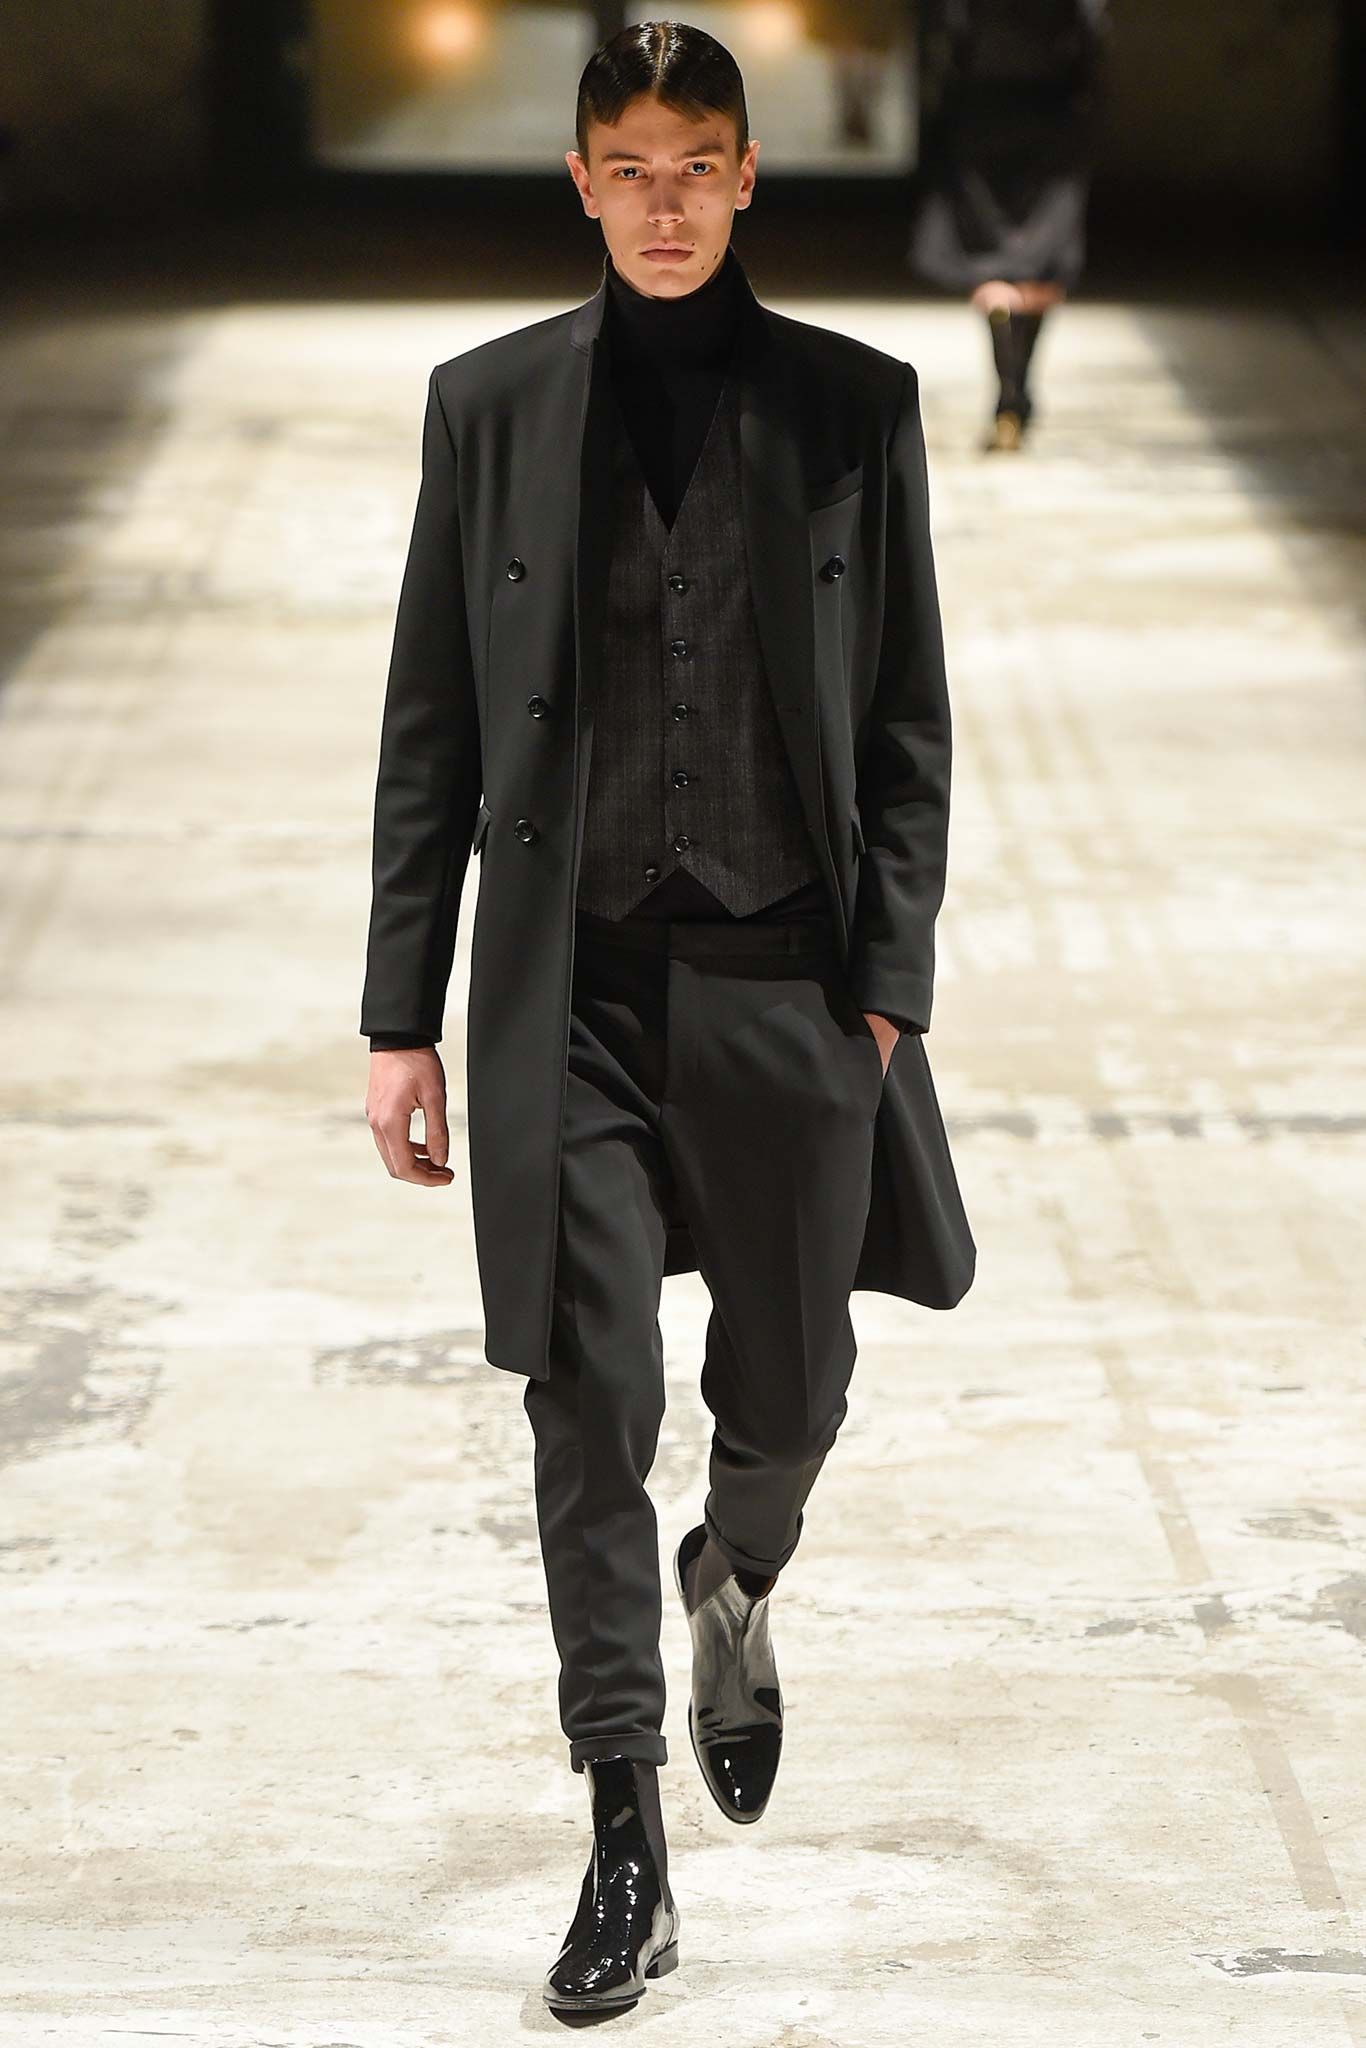 #Menswear #Trends Bruuns Bazaar Fall Winter 2015 Collection Otoño Invierno #Tendencias #Moda Hombre  D.P.